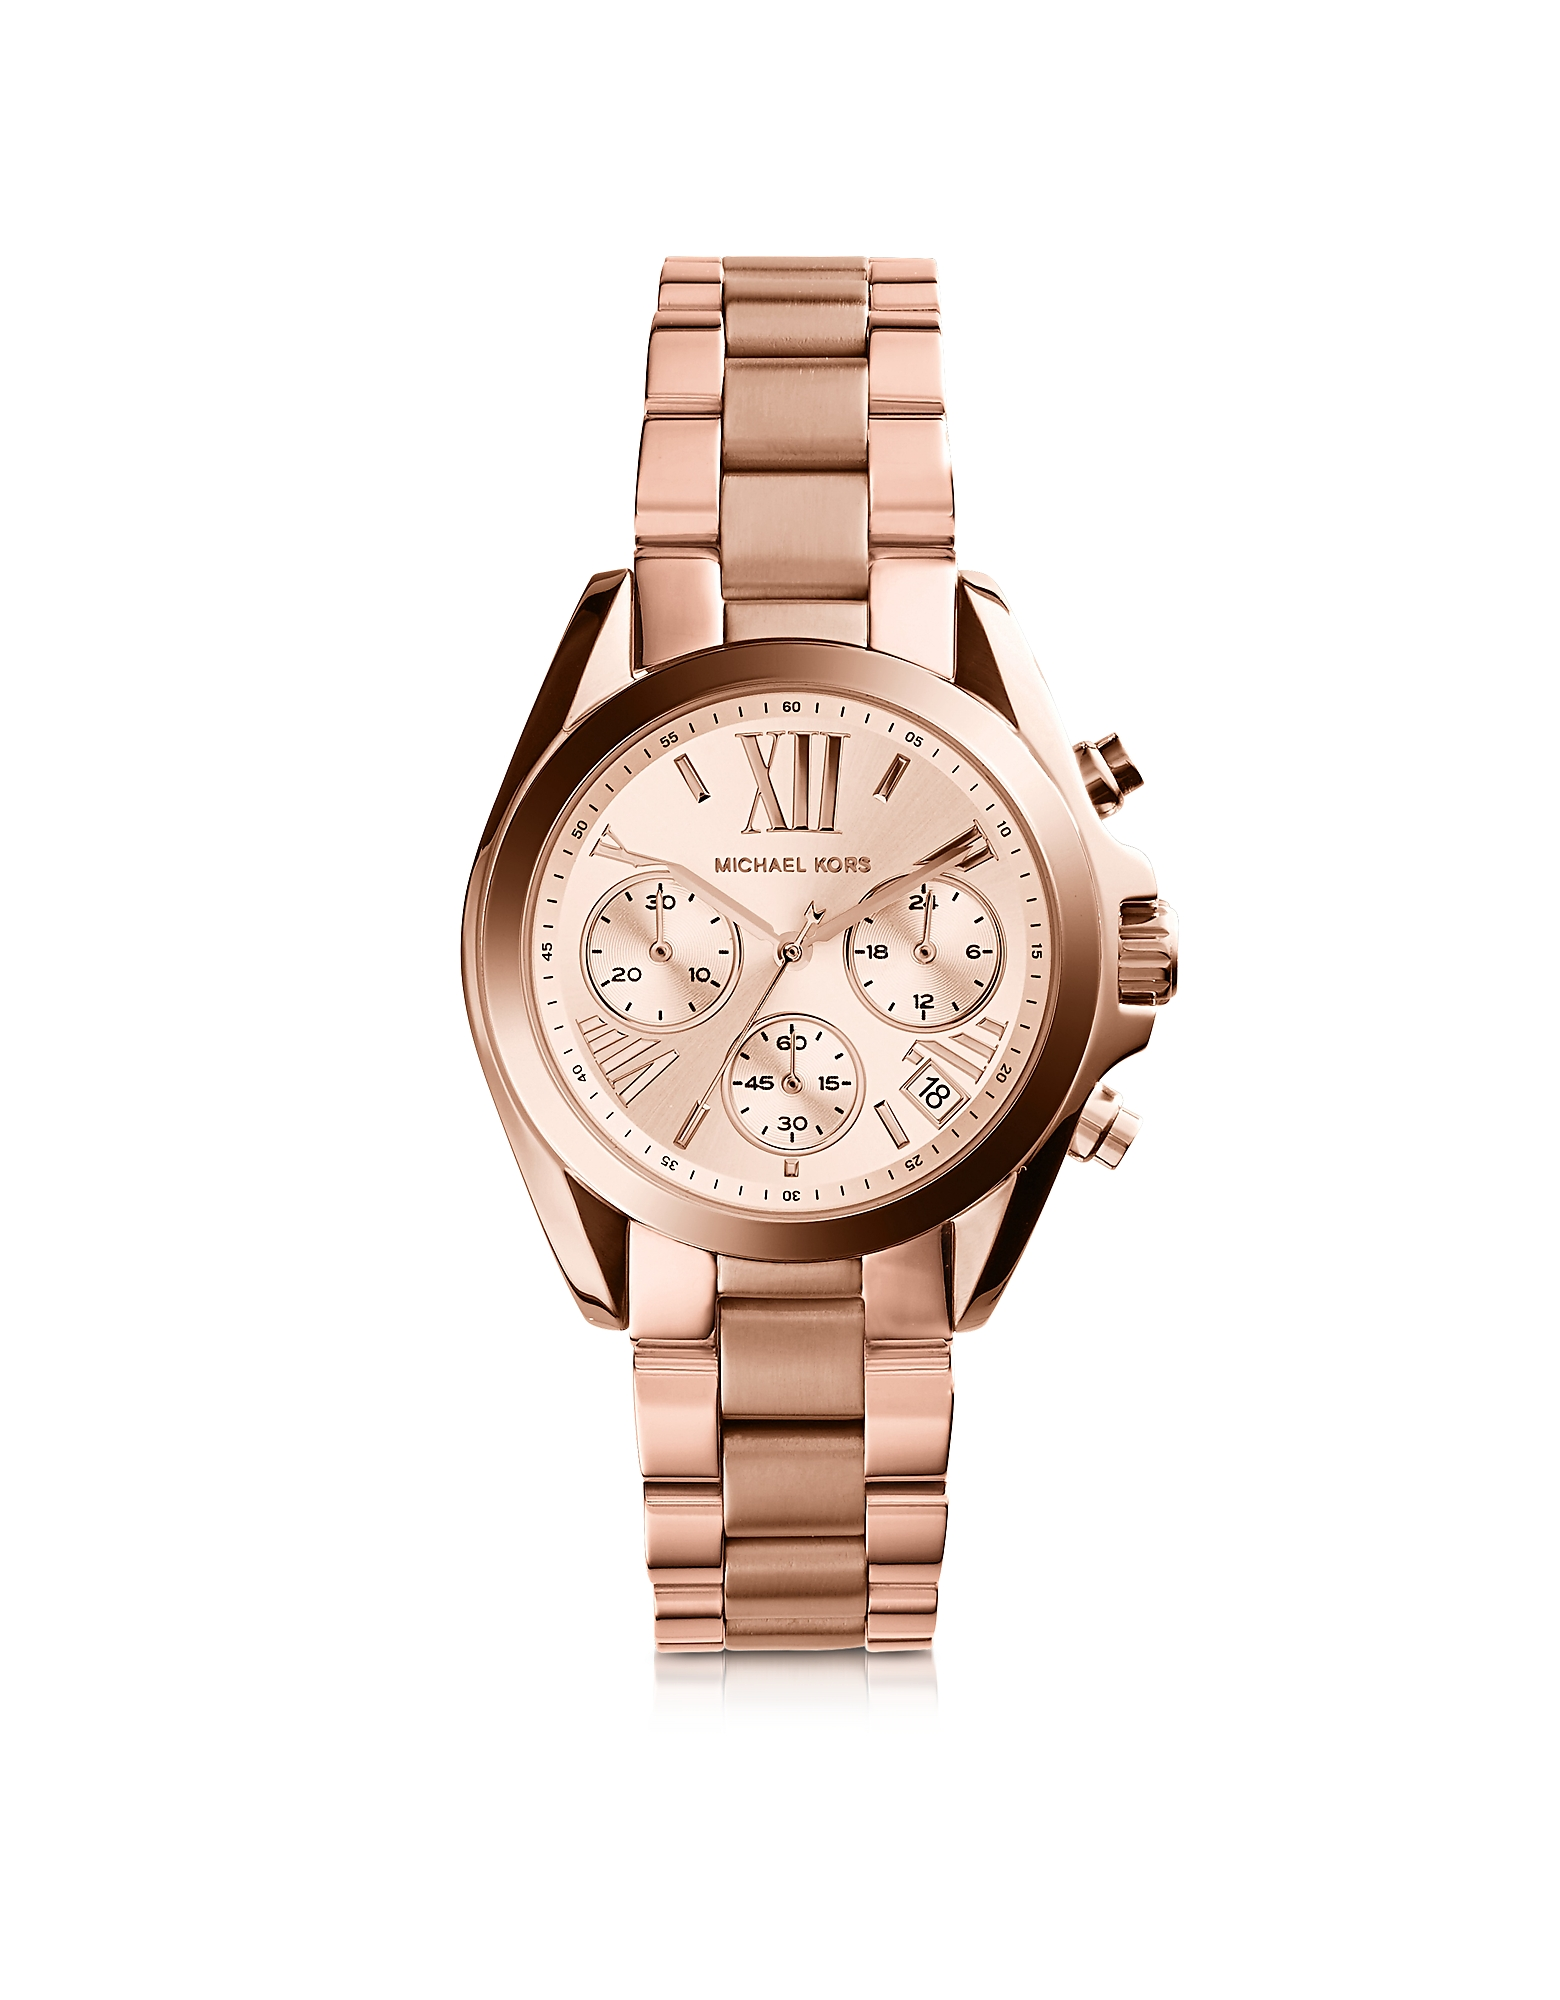 Michael Kors Women's Watches, Bradshaw Stainless Steel Women's Watch